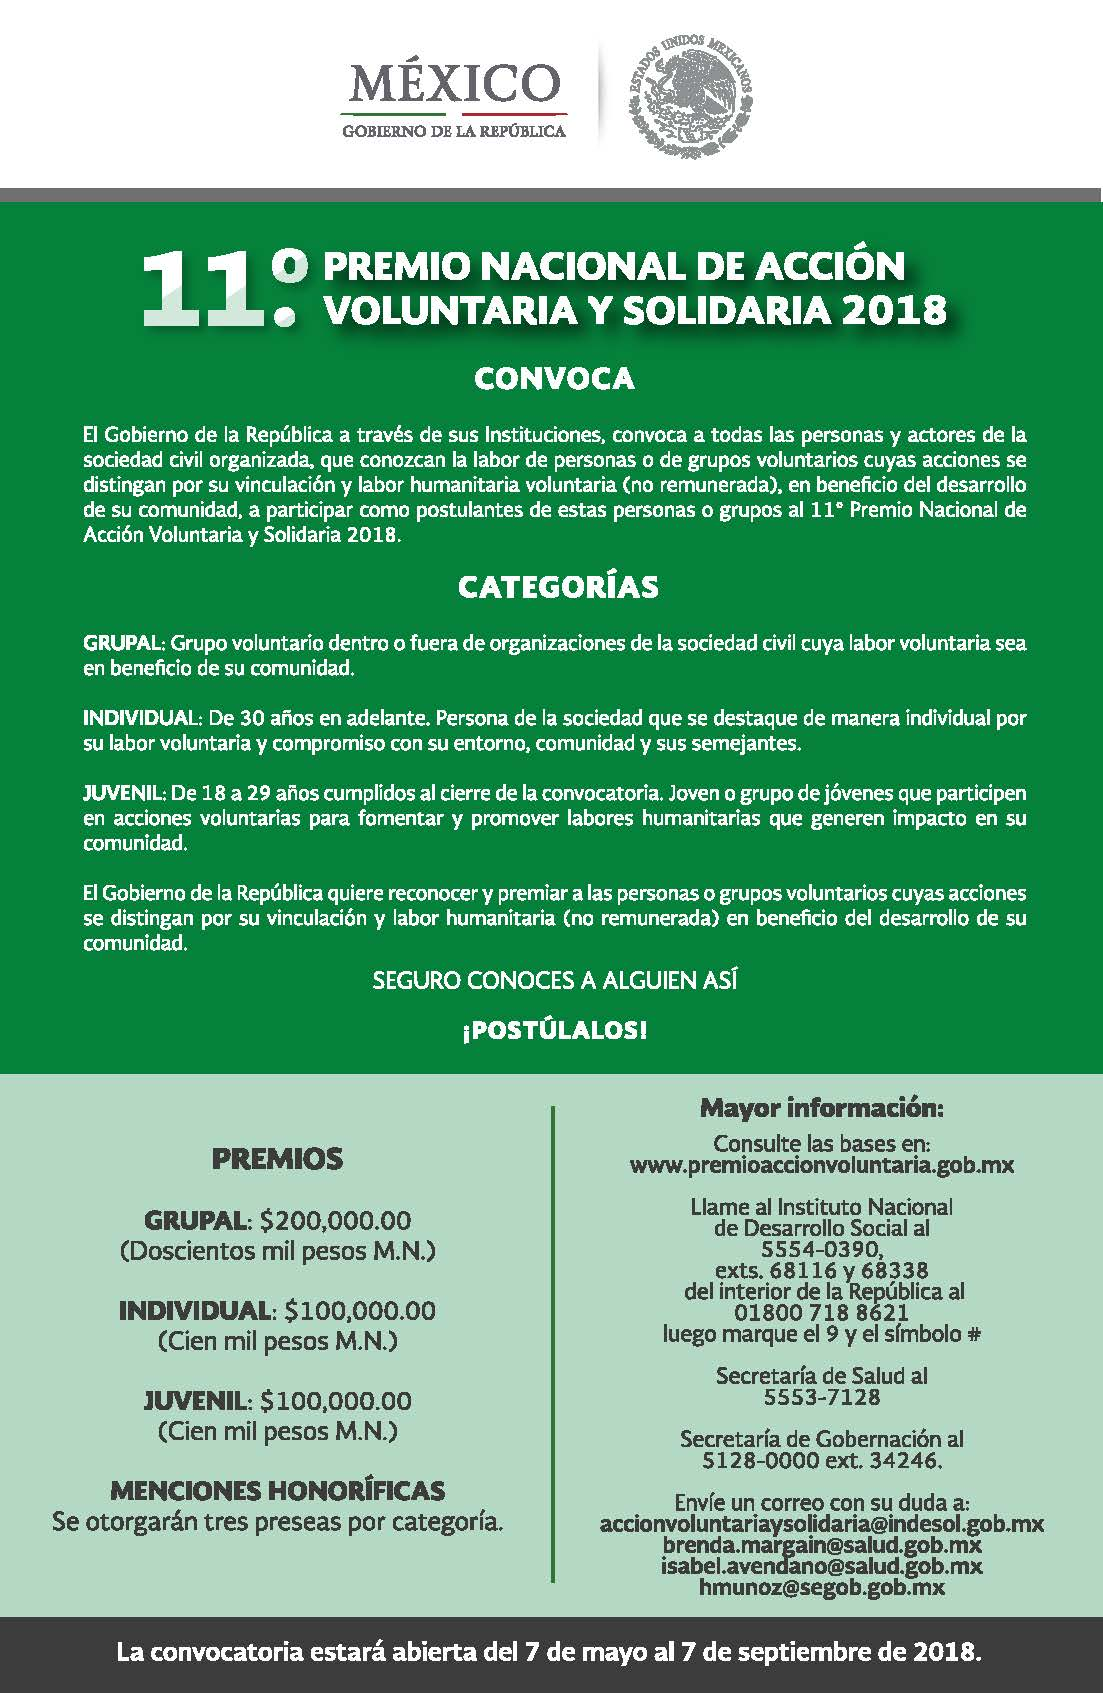 Bases y Requisitos de la Convocatoria al 11° Premio Nacional de Acción Voluntaria y Solidaria